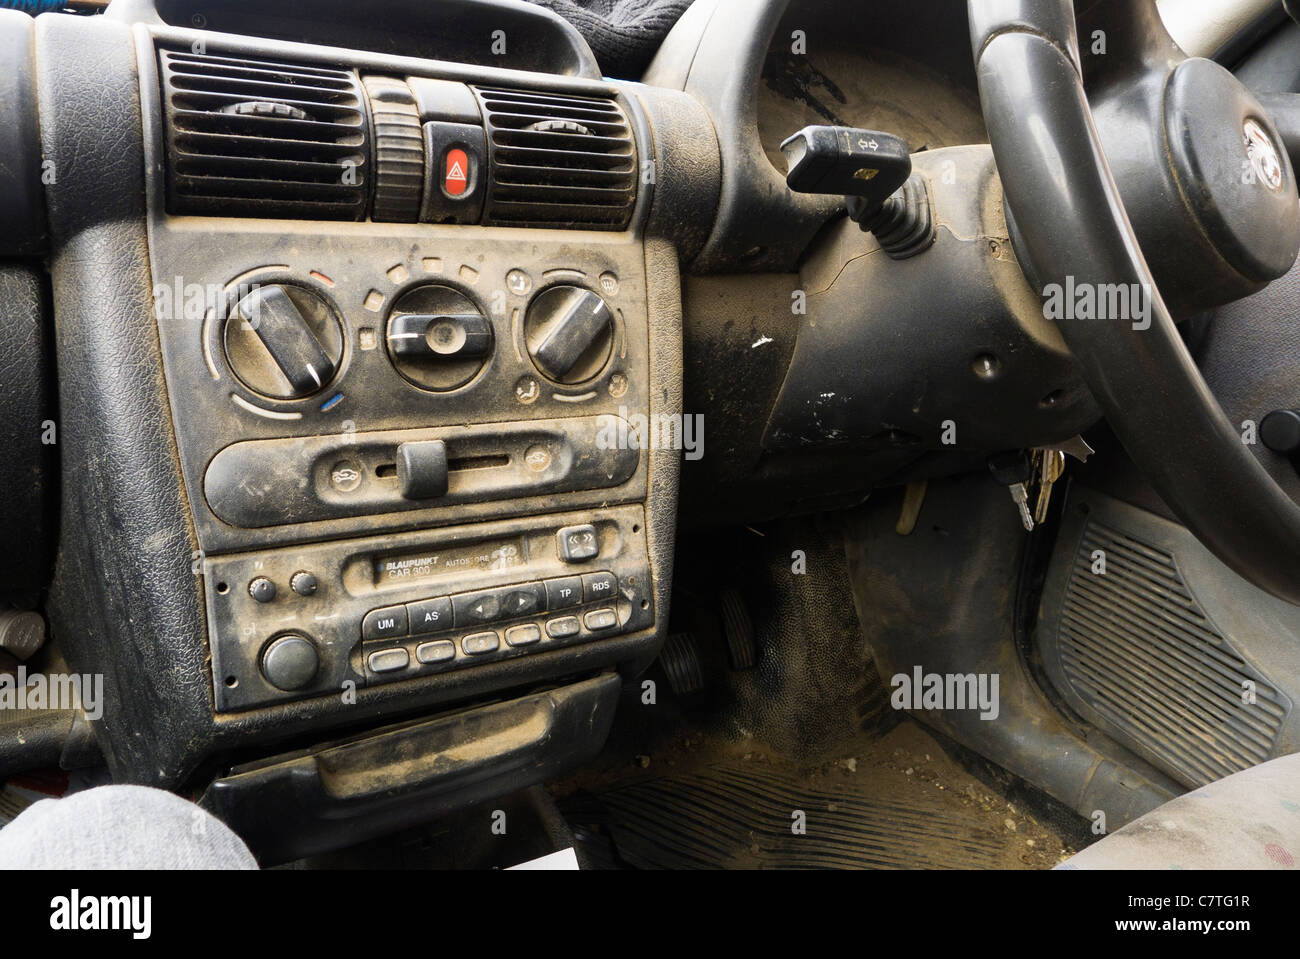 a very dirty car interior and dashboard stock photo 39262771 alamy. Black Bedroom Furniture Sets. Home Design Ideas